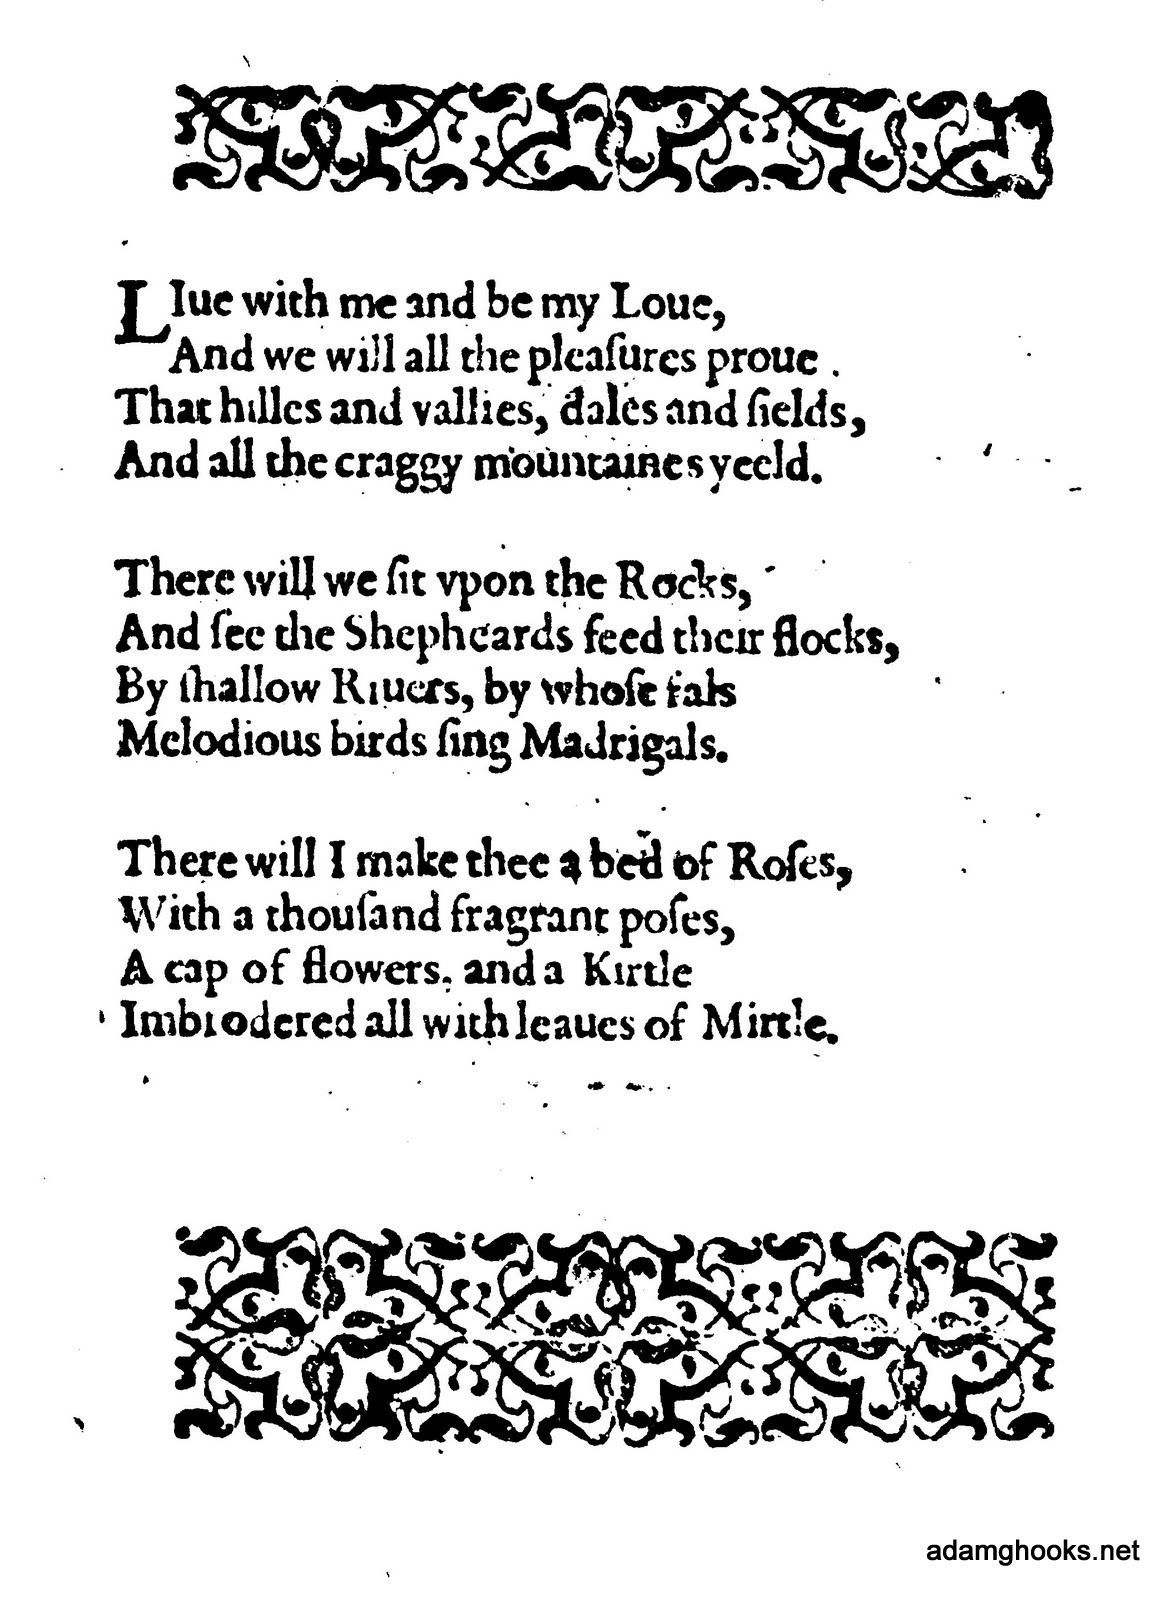 a n c h o r a anonymous marlowe among the interlopers is the first printed version of the passionate shepherd printed as one poem the first stanza from what we now call the